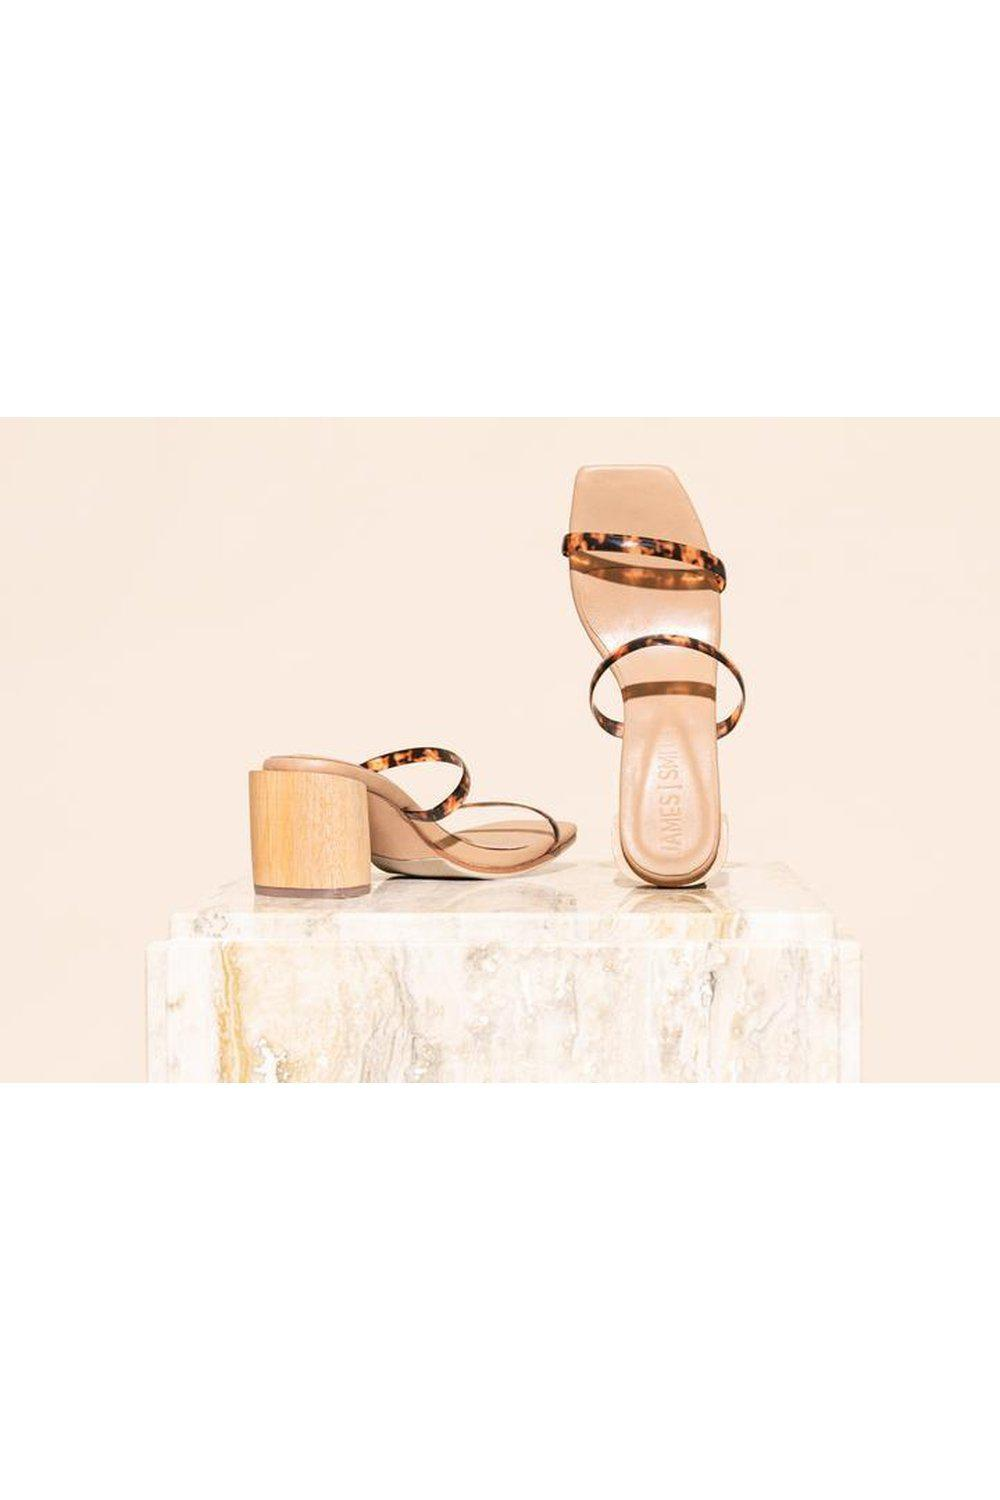 Sirenuse Strap Sandal / Tortoise shell | James Smith | Mad About The Boy